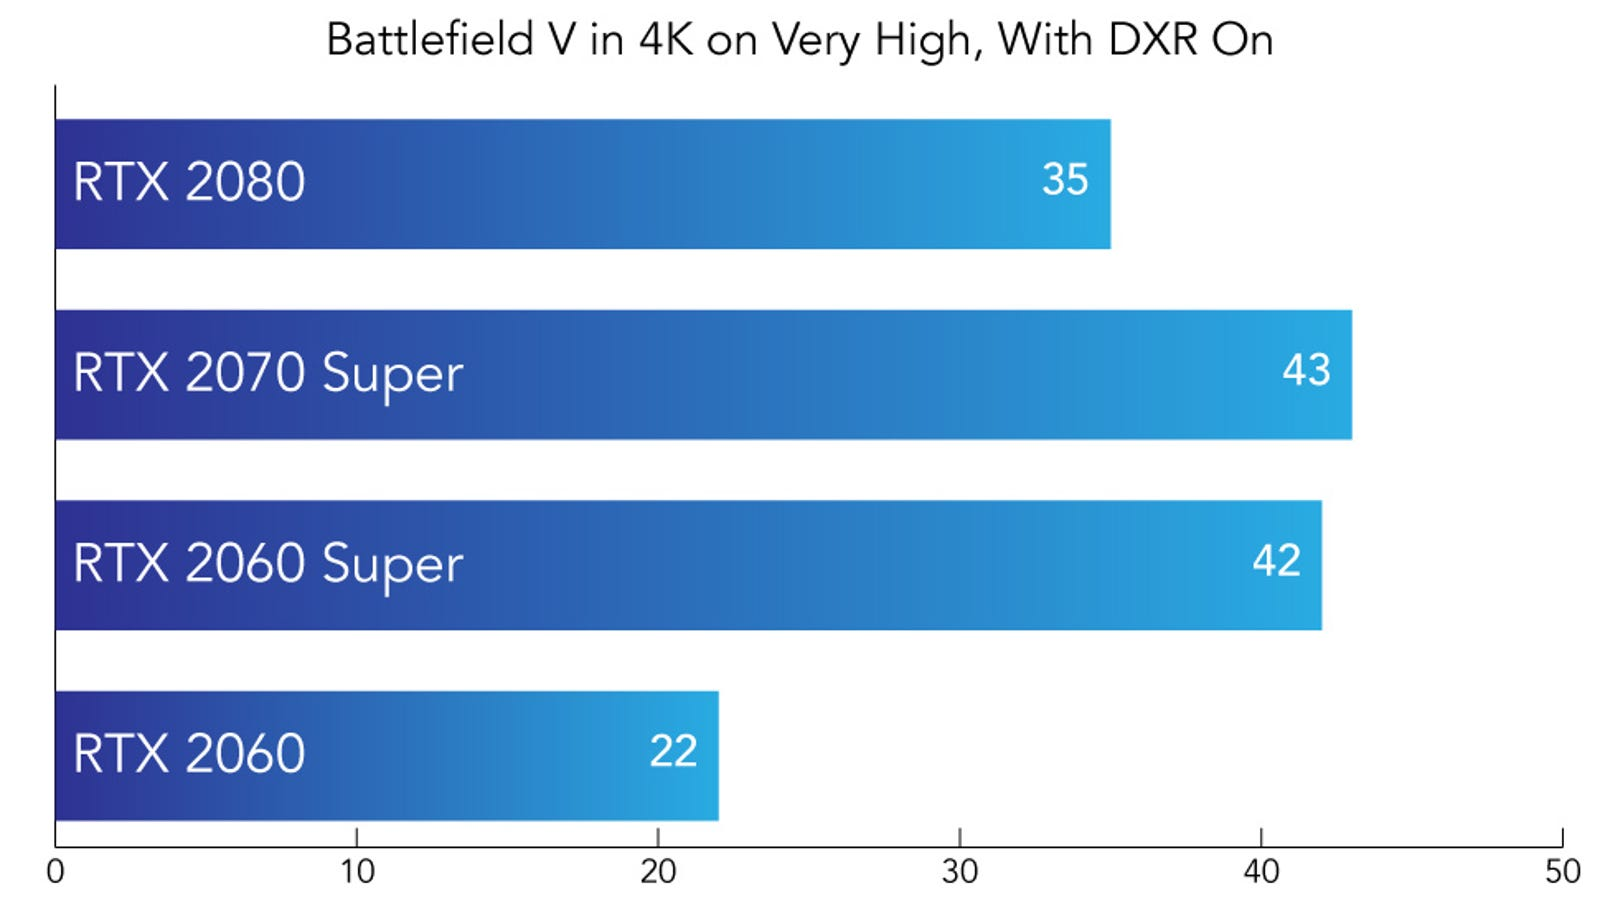 Average frames per second in Battlefield V with ray tracing turned on. Higher is better.